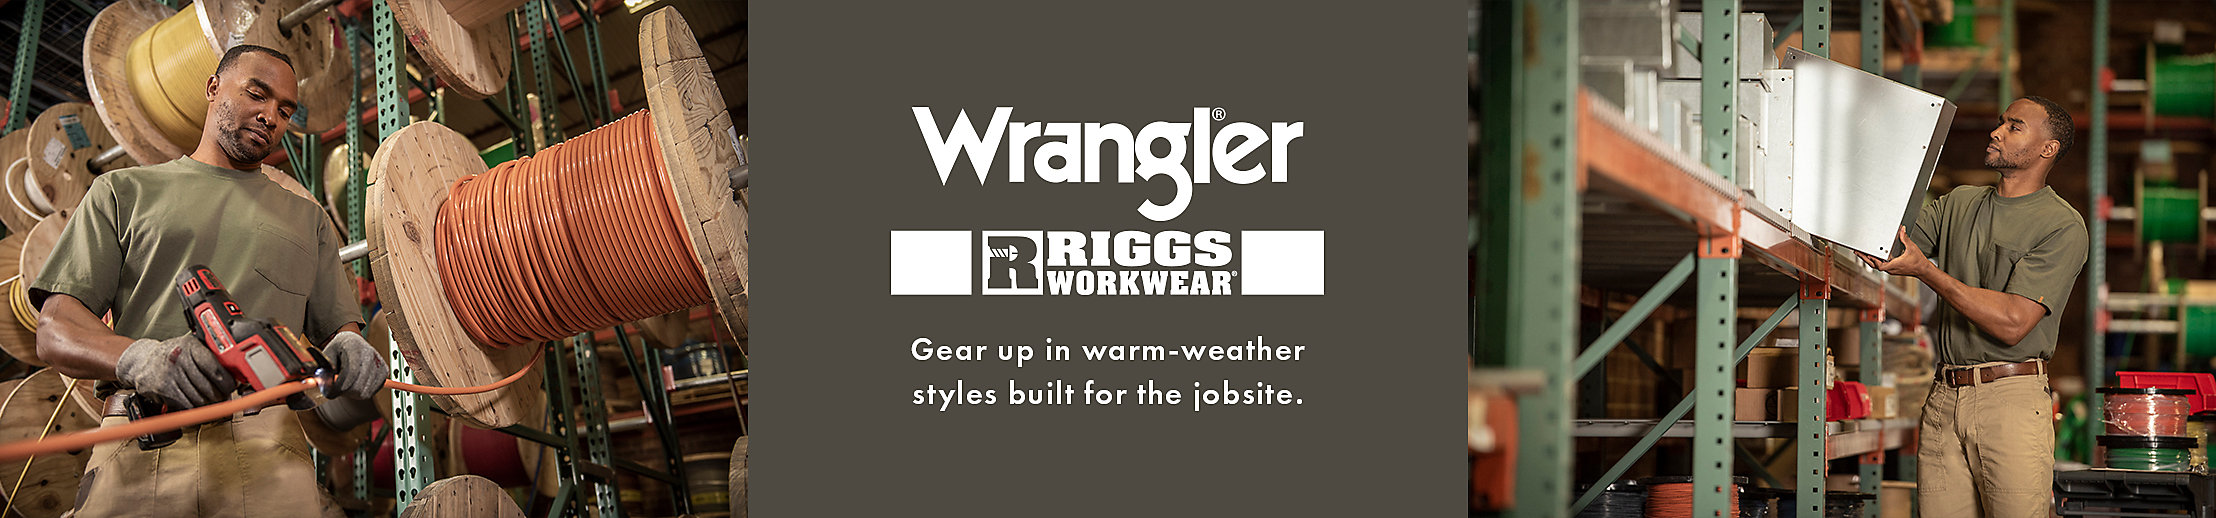 Shop Riggs Workwear by Wrangler